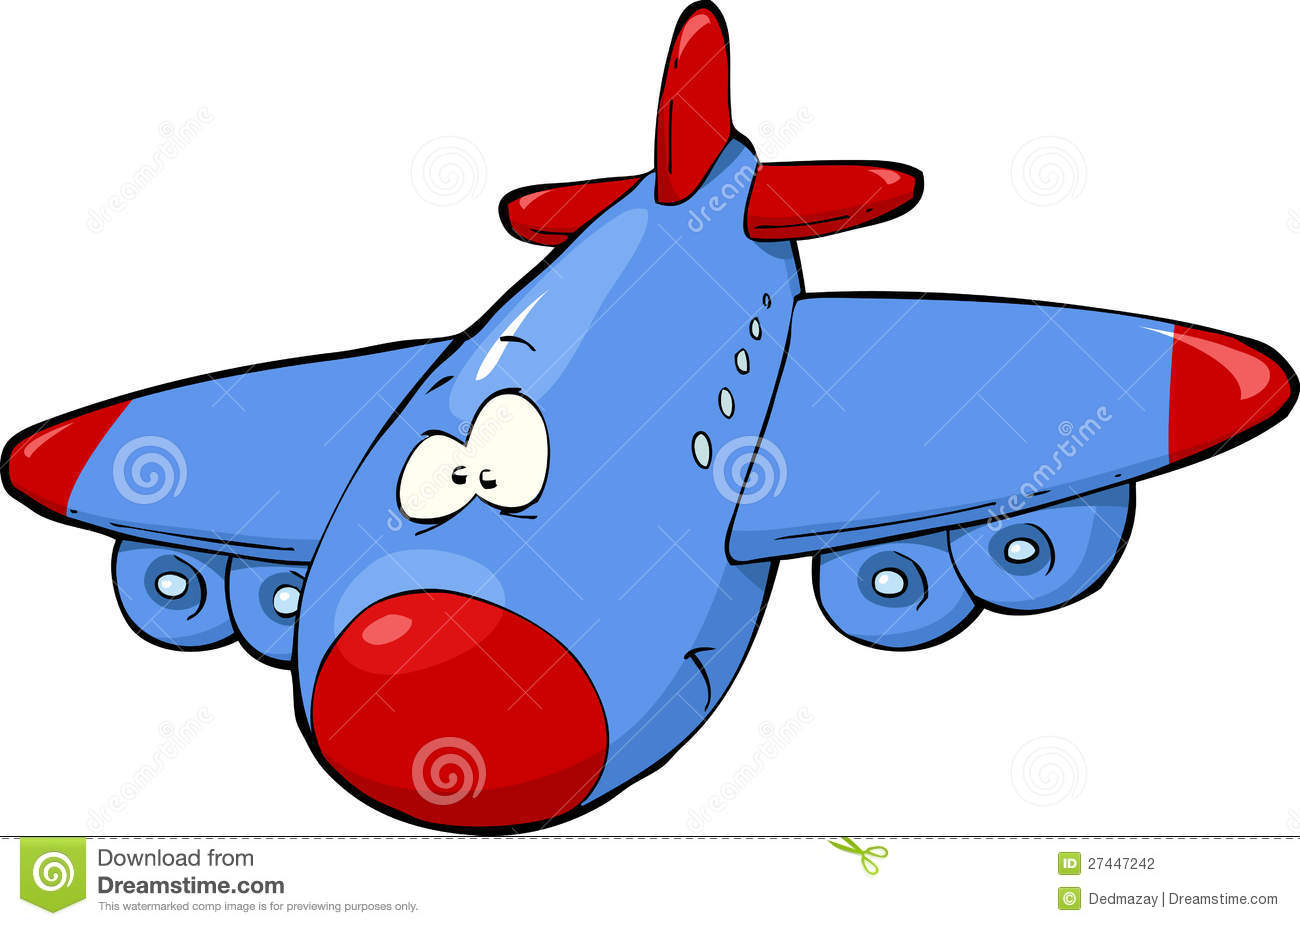 Cartoon Airplane Stock Vector Illustration Of Illustration 27447242